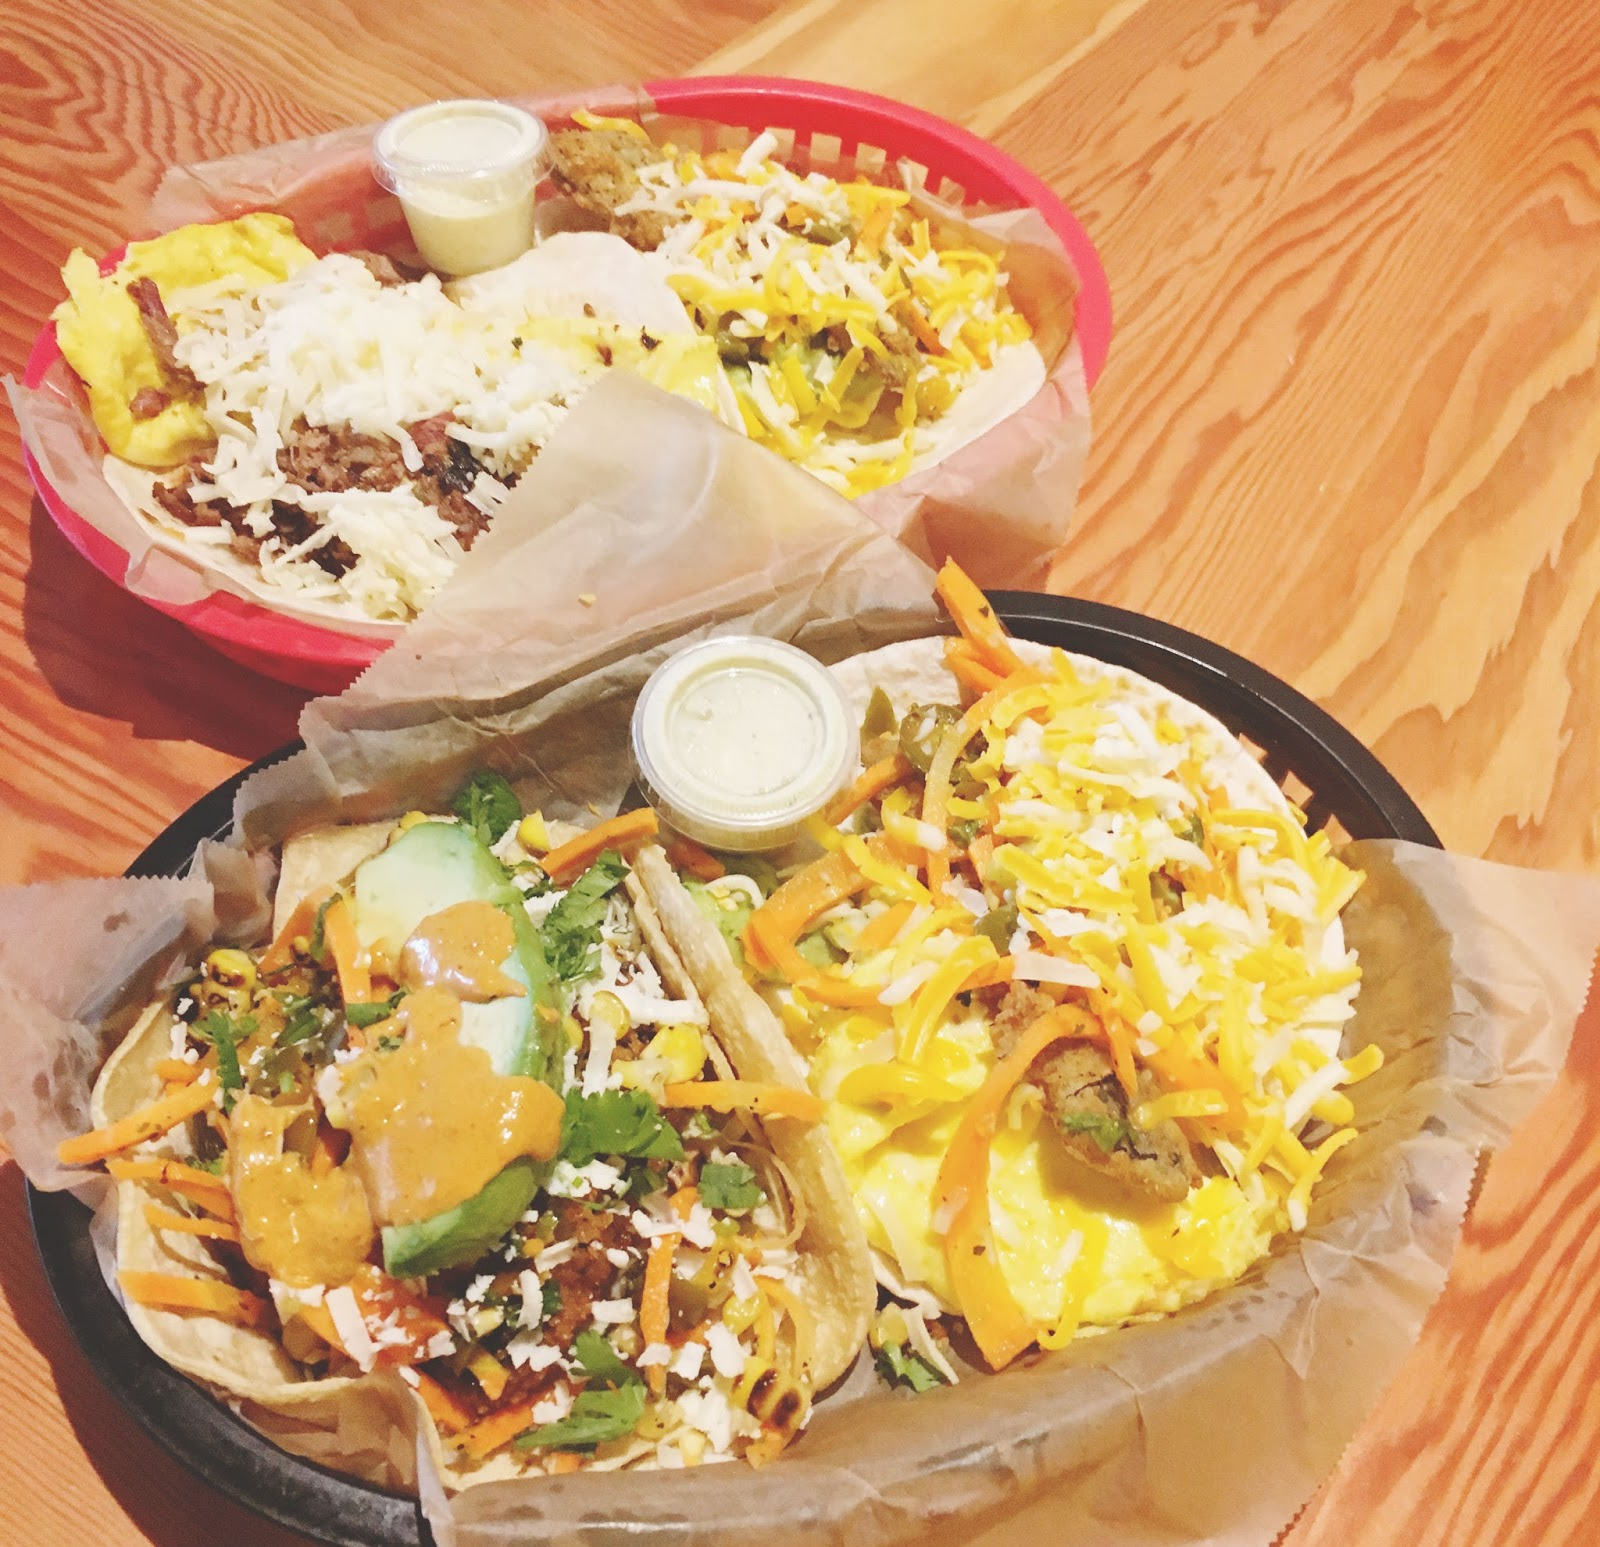 breakfast tacos at Torchy's - a restaurant in Houston, Texas